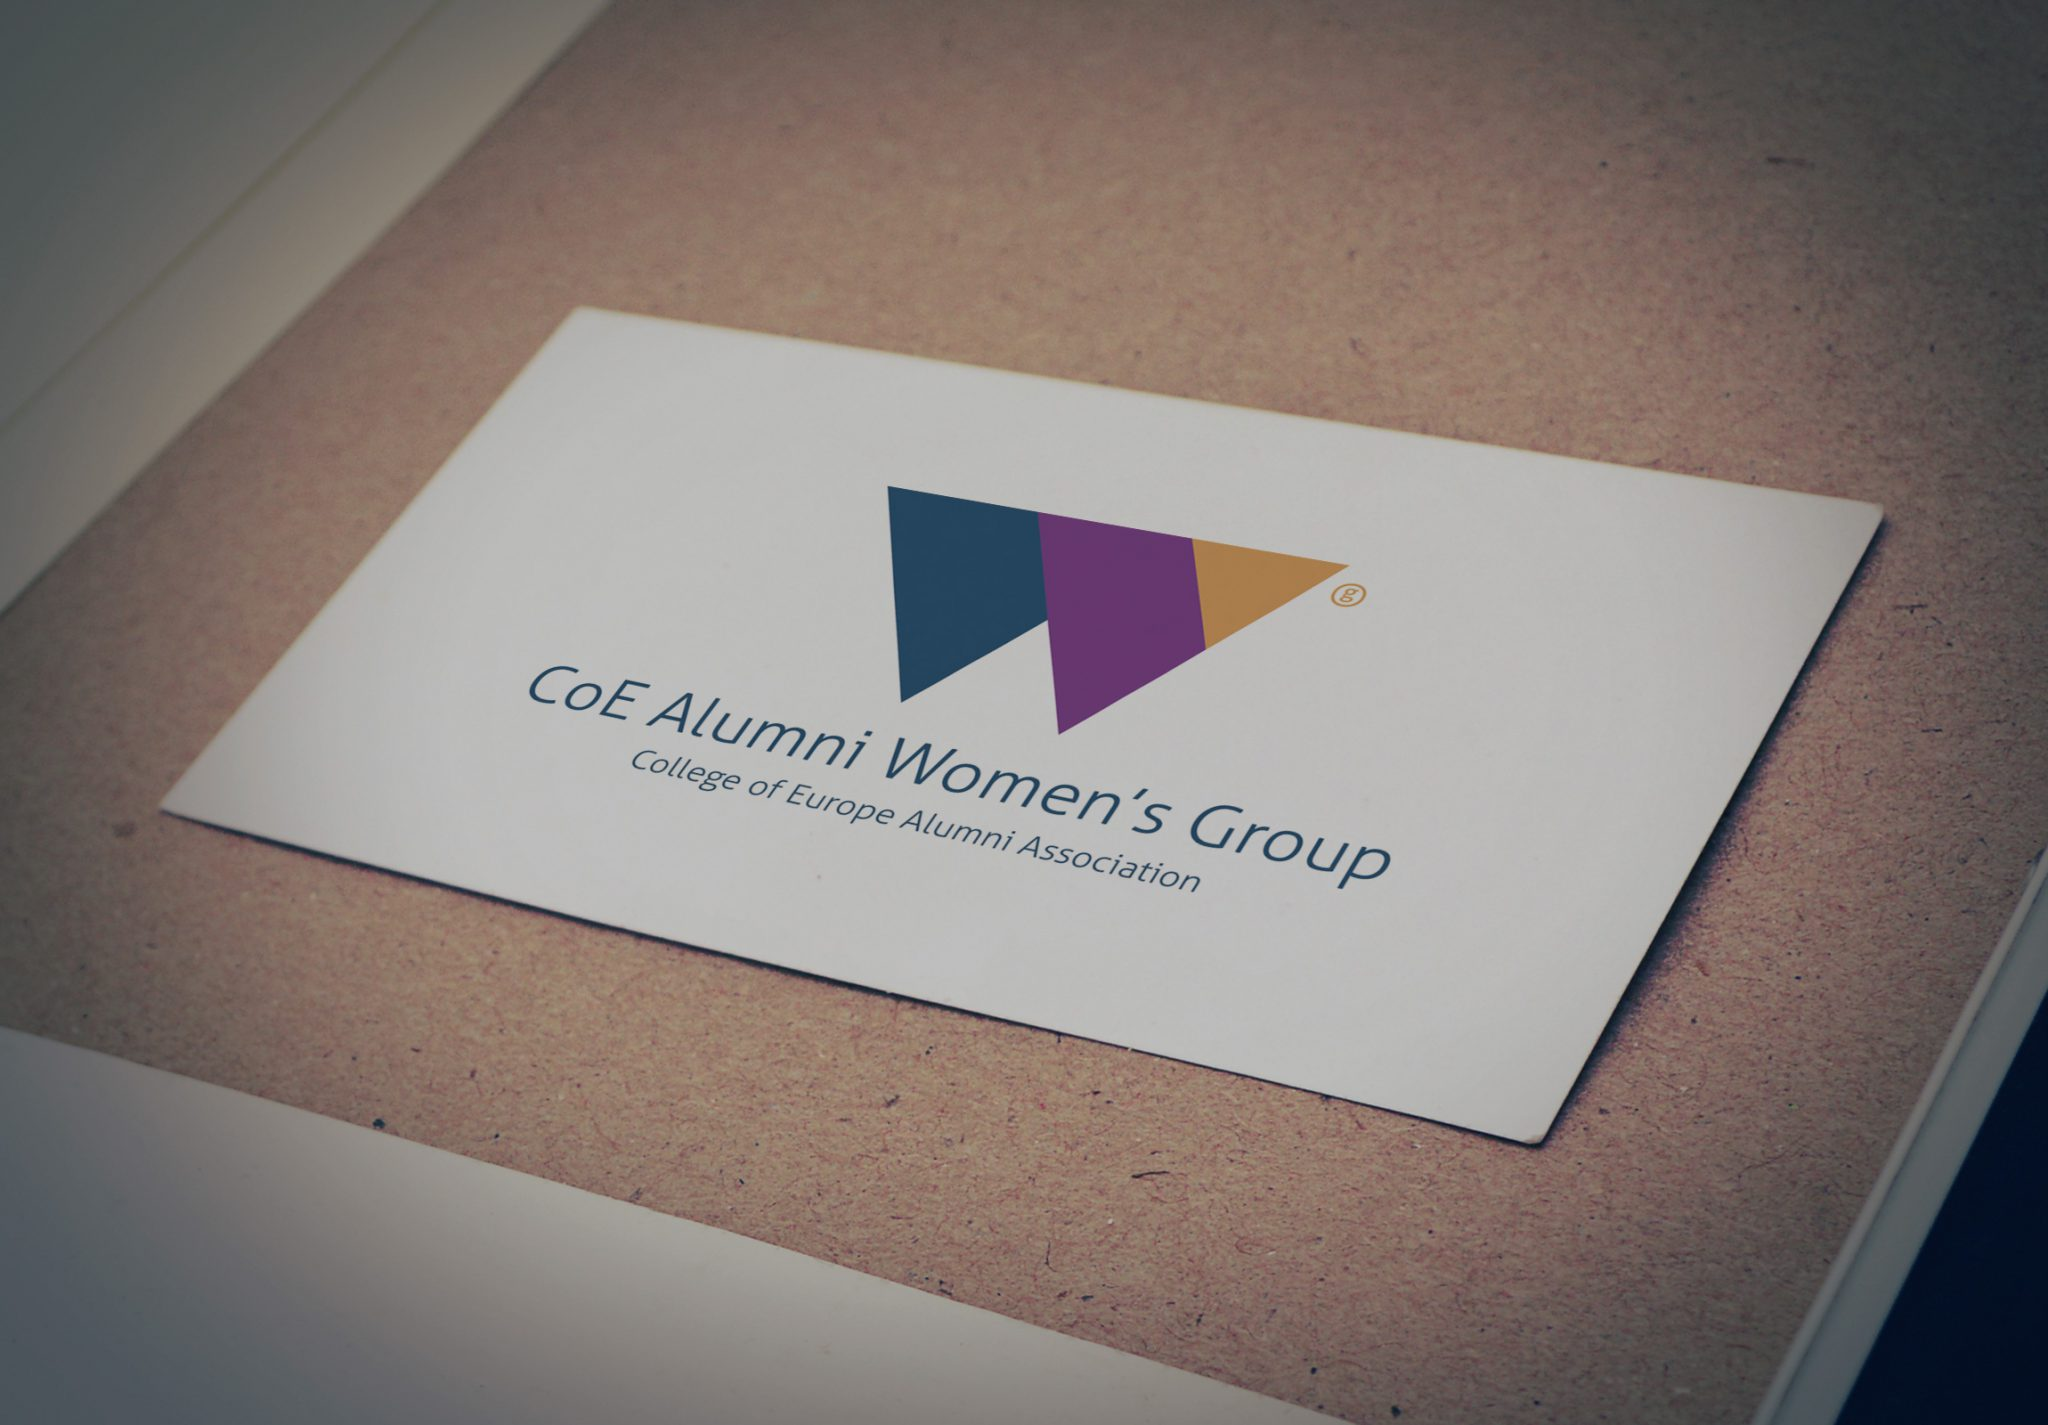 College of Europe Alumni Women's Group